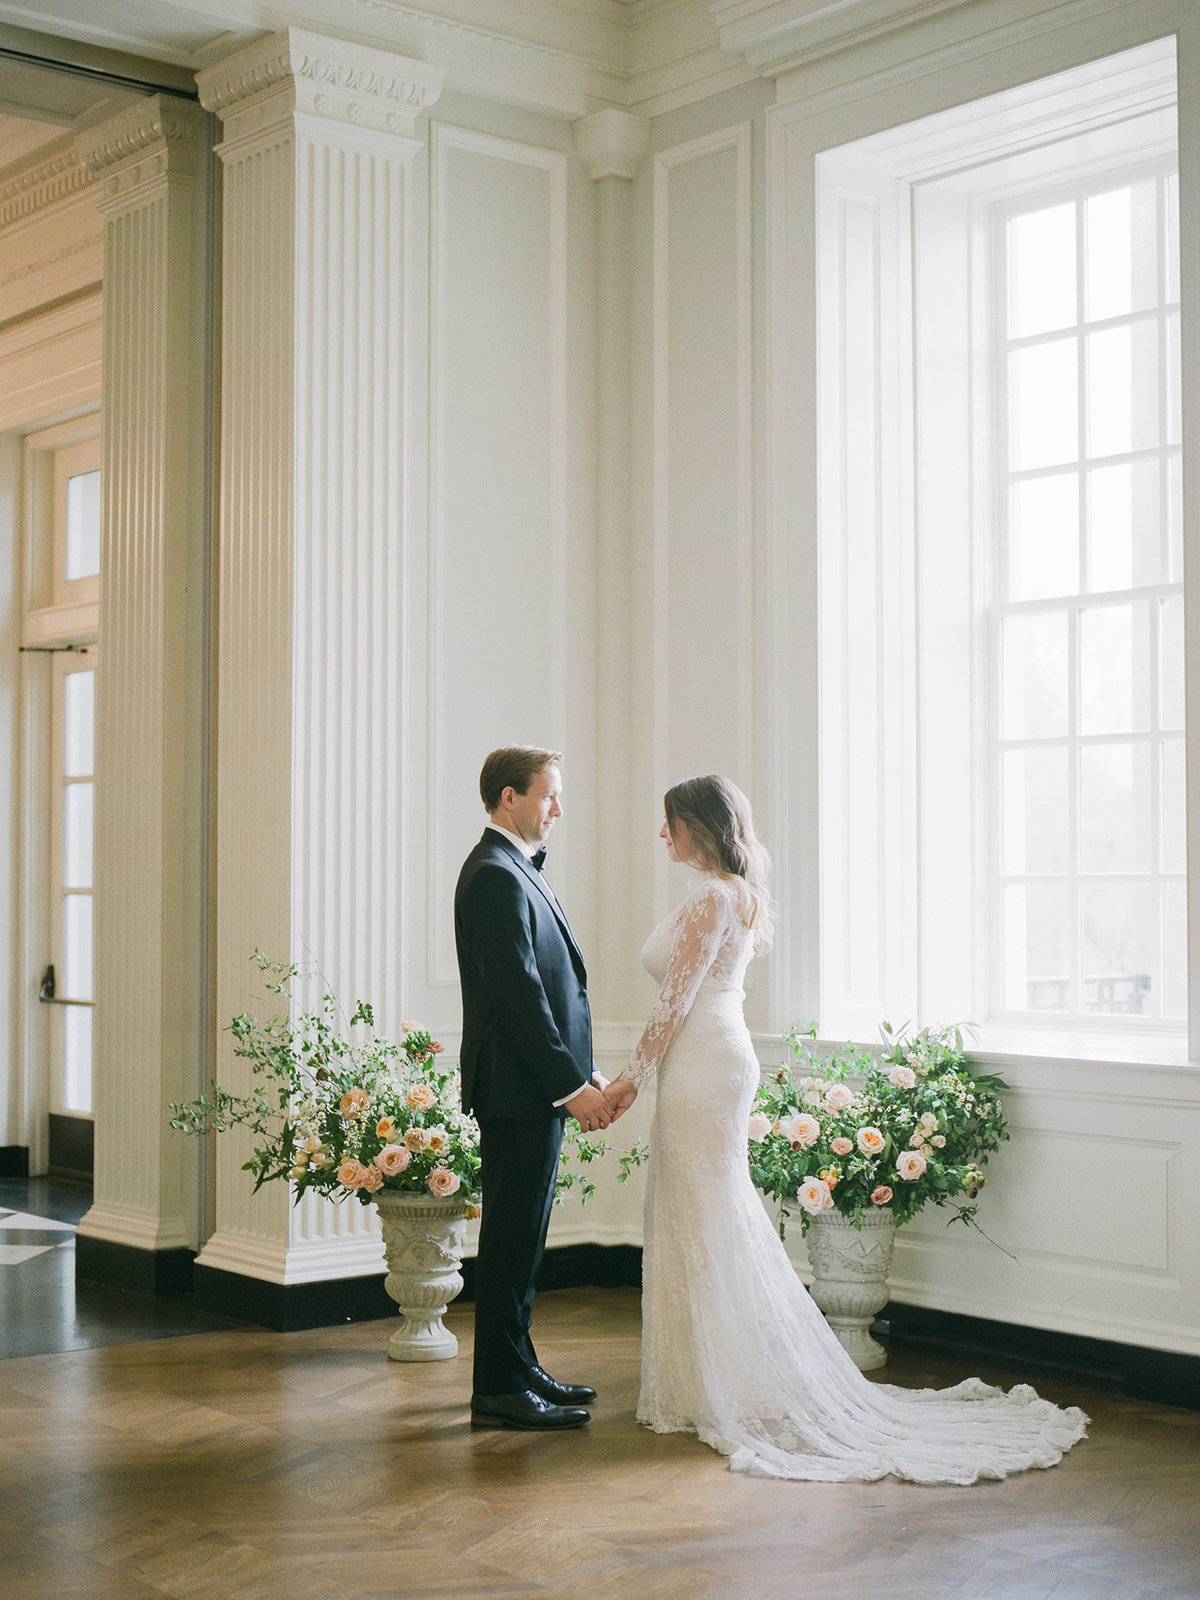 Chicago Wedding Photographer - Chicago History Museum - Sarah Sunstrom Photography - Fine Art Wedding Photographer - 24